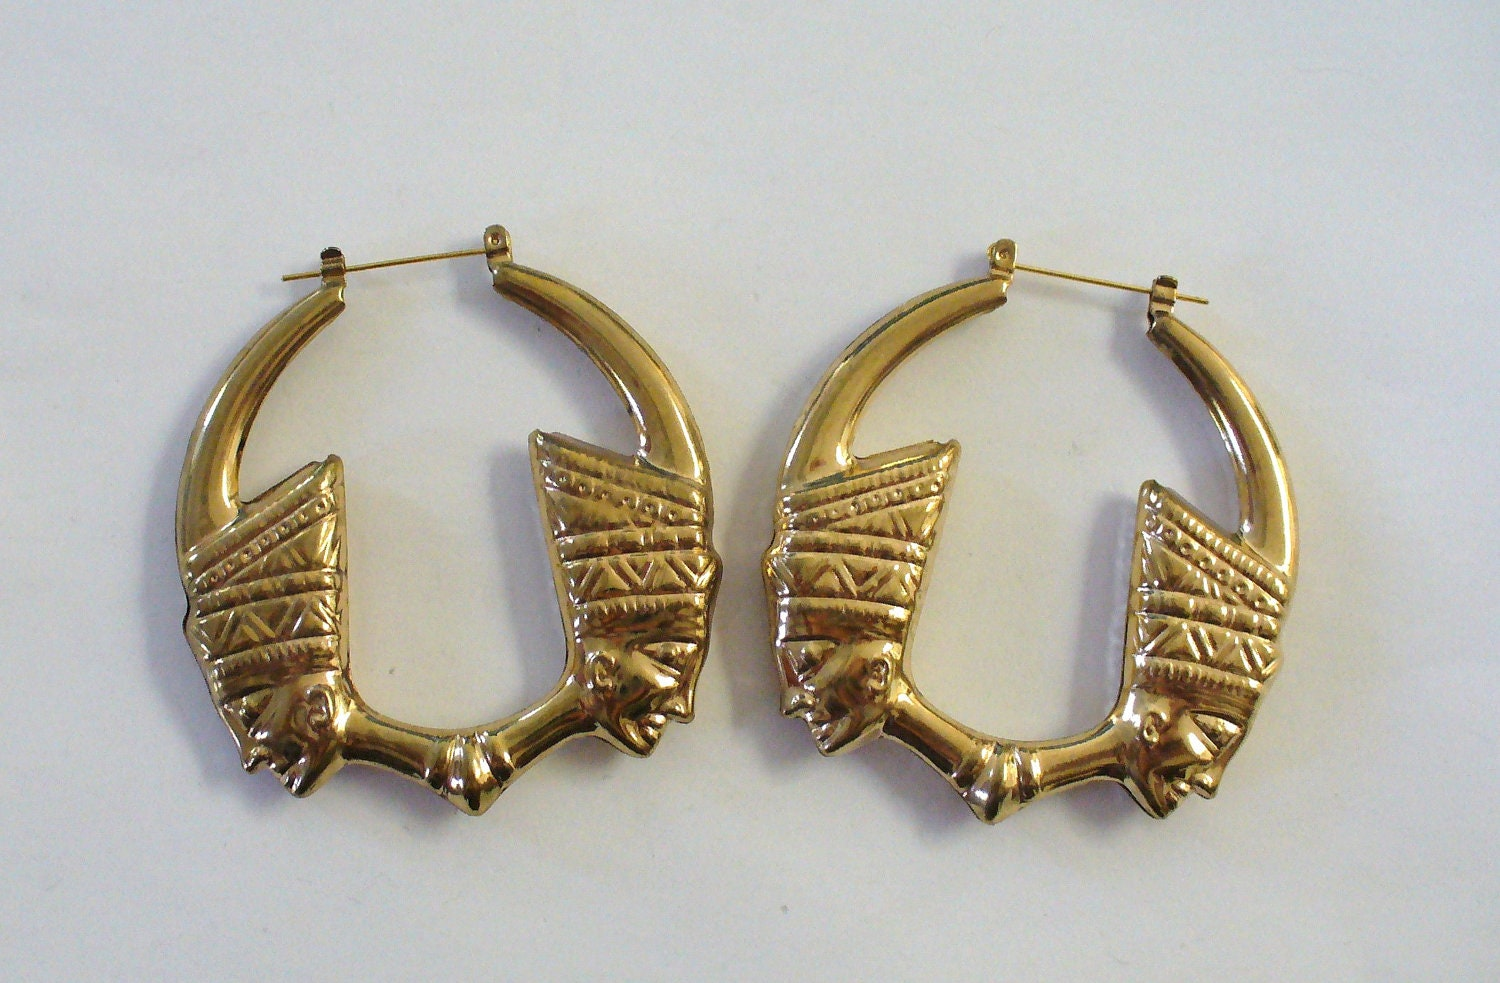 Vintage Nefertiti Door Knocker Earrings Deadstock